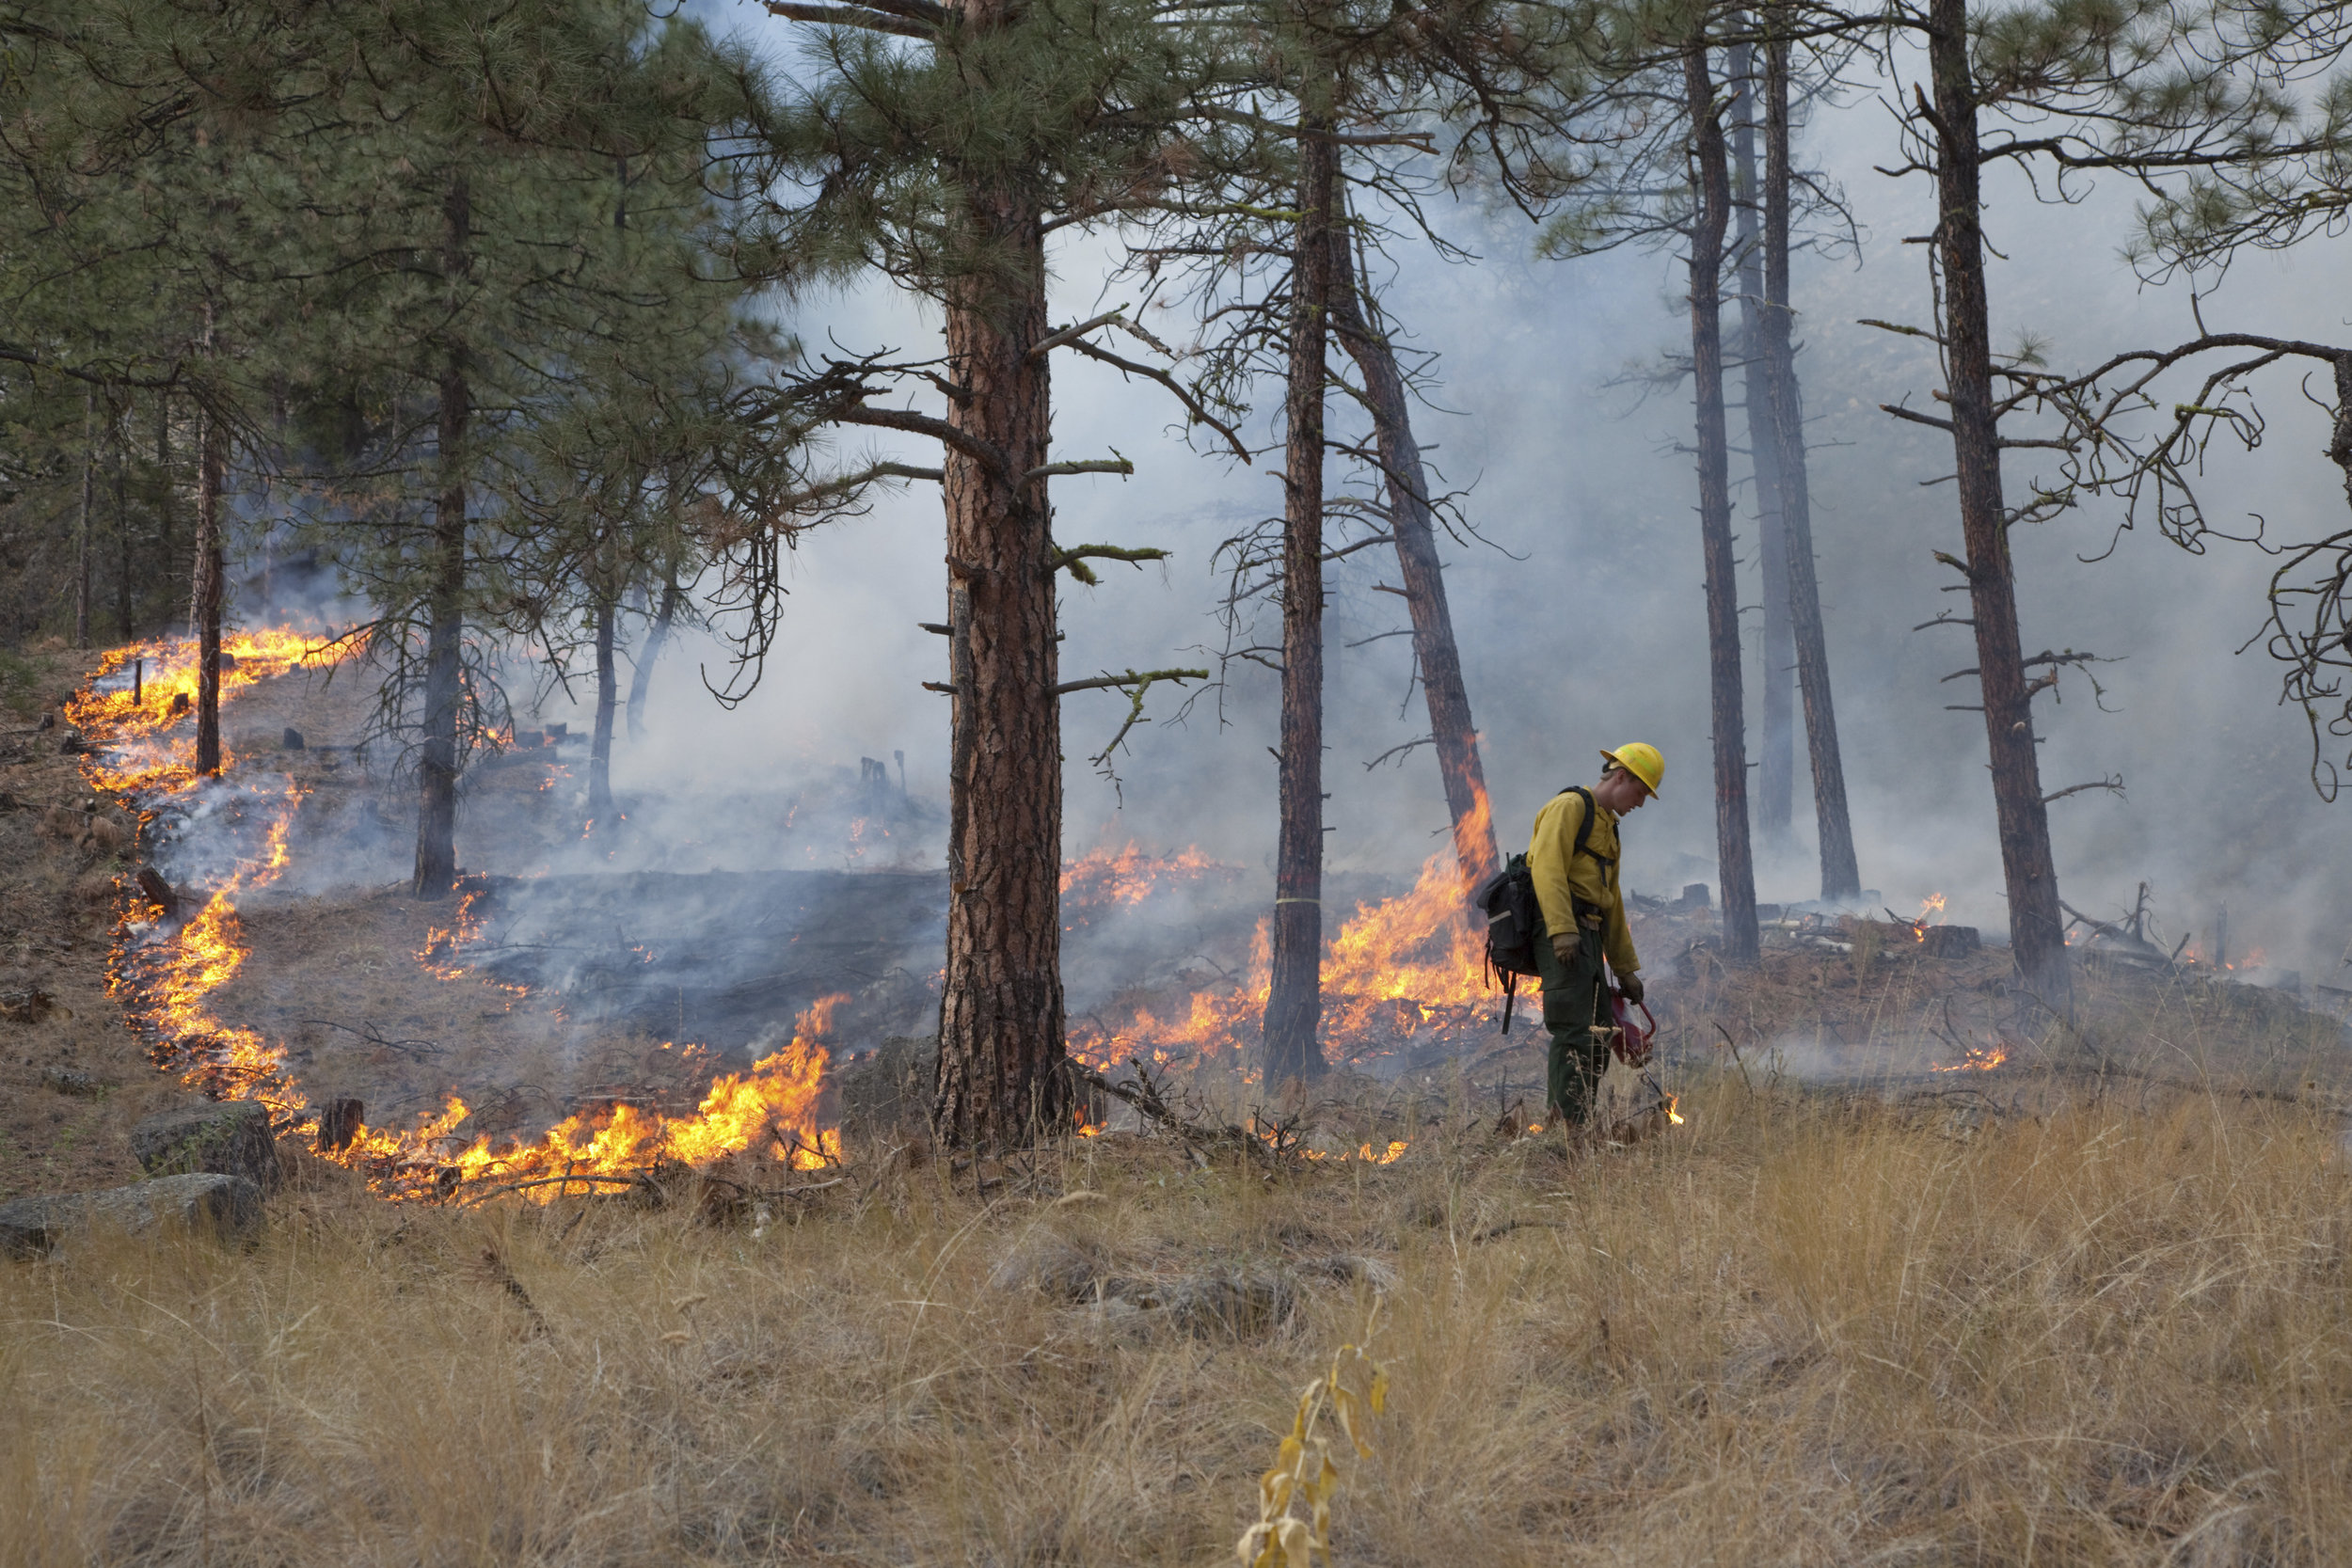 Prescribed fire in ponderosa pine forest in fall on Sinlahekin Wildlife Area in Okanogan County. Treatment unit is Conner 5, which had been logged and thinned in winter prior. Seth Midkiff lighting with drip torch.Photo by John Marshall.